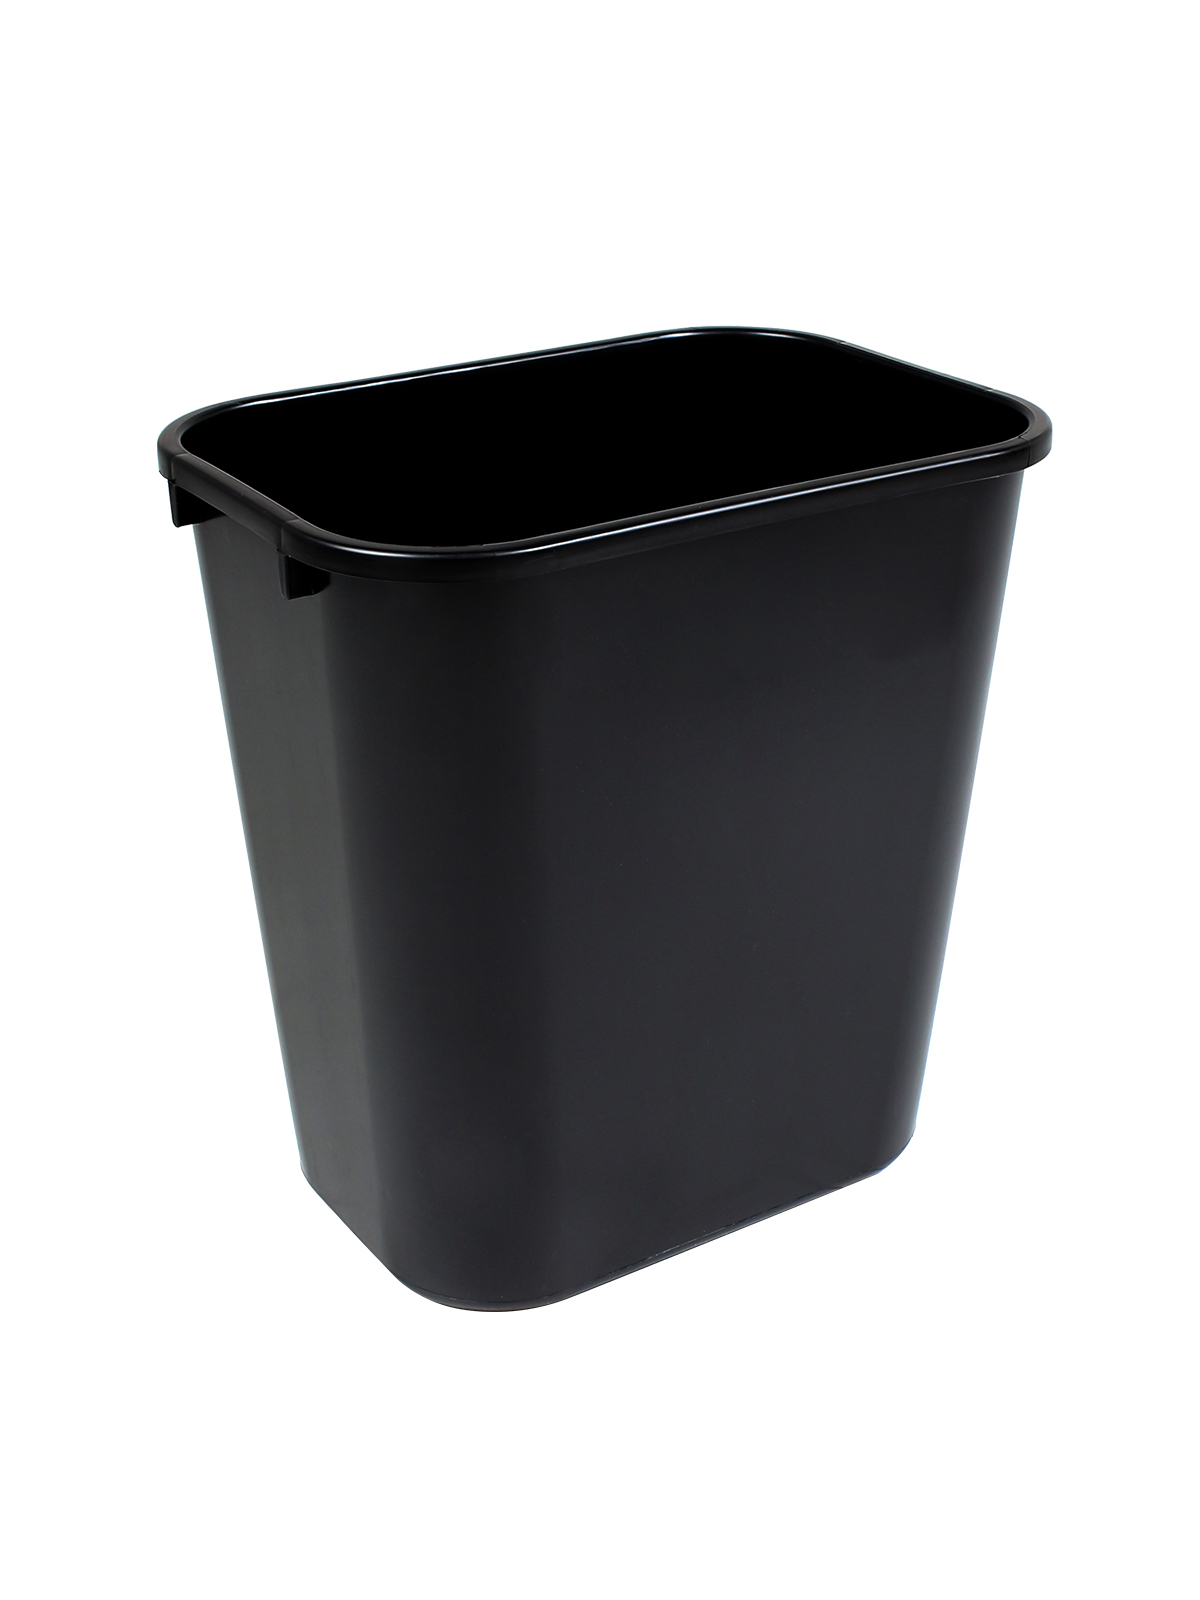 RECYCLING & WASTE BASKET 28 Q title=